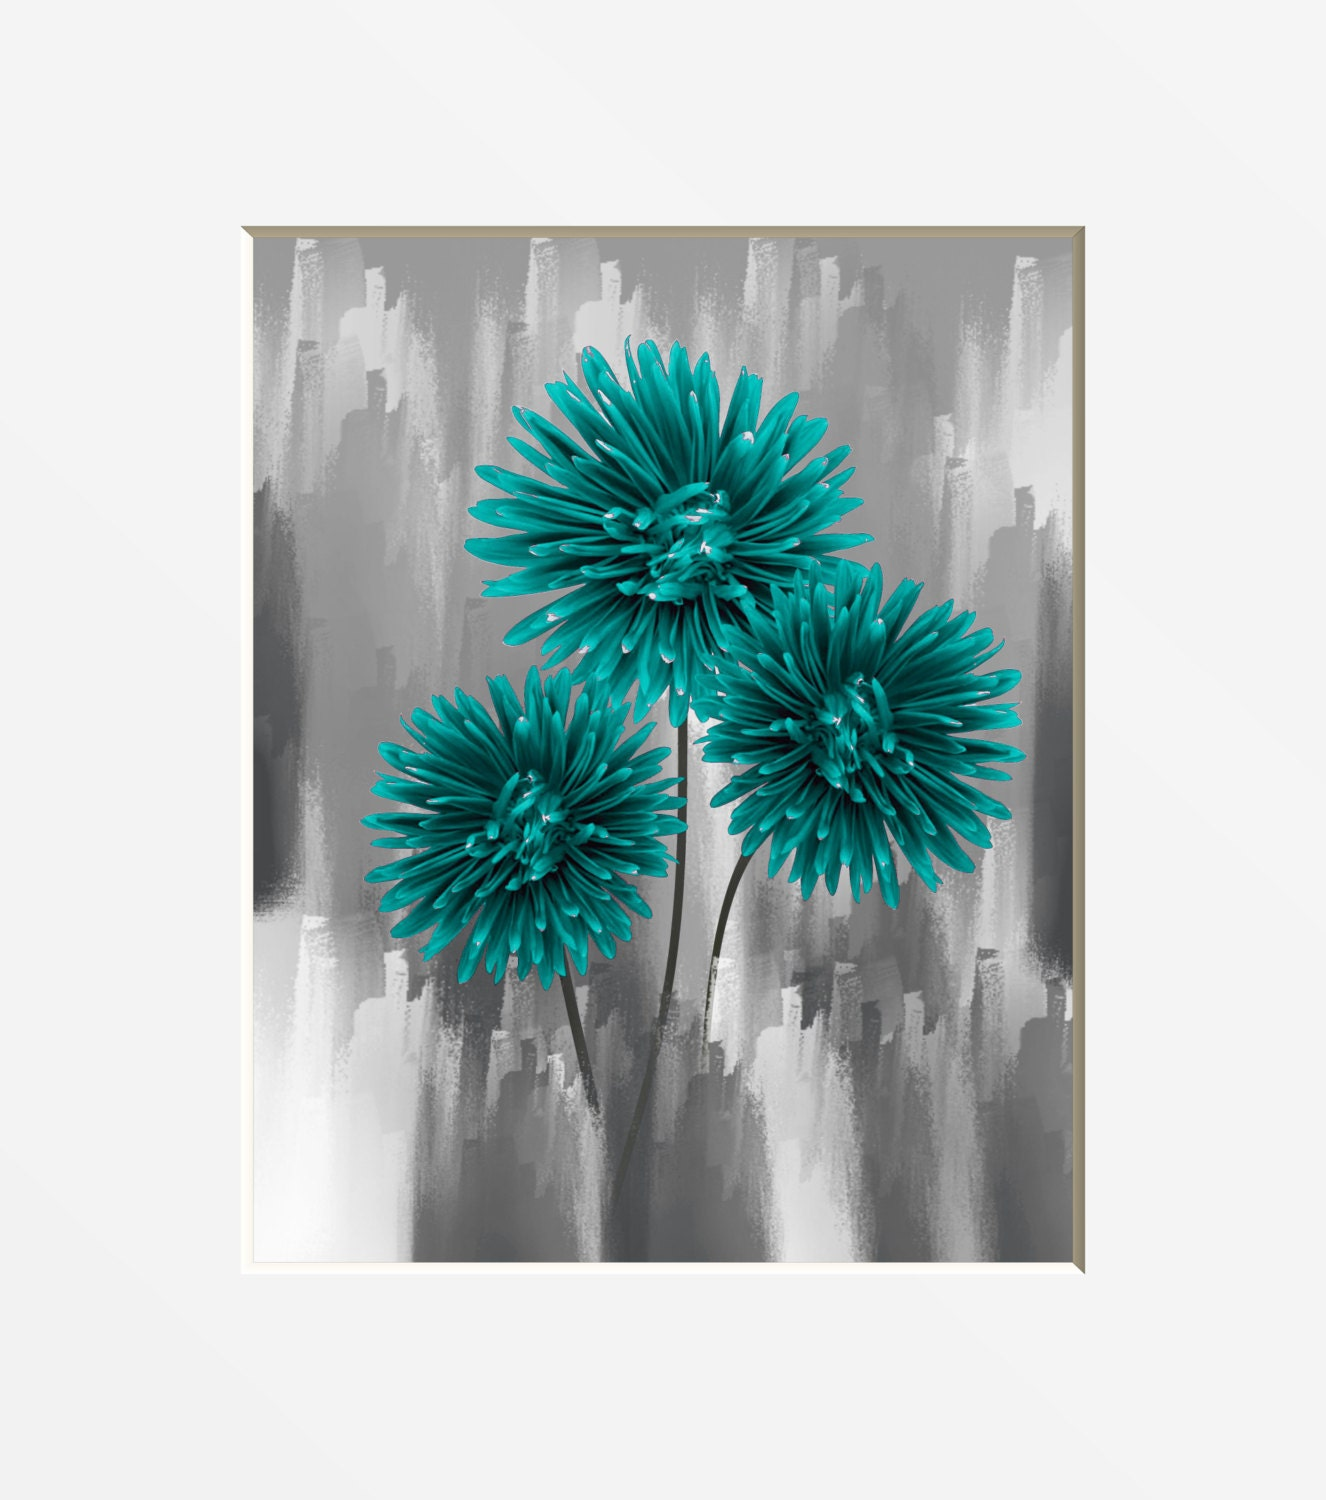 teal gray floral wall art photography home decor modern wall. Black Bedroom Furniture Sets. Home Design Ideas